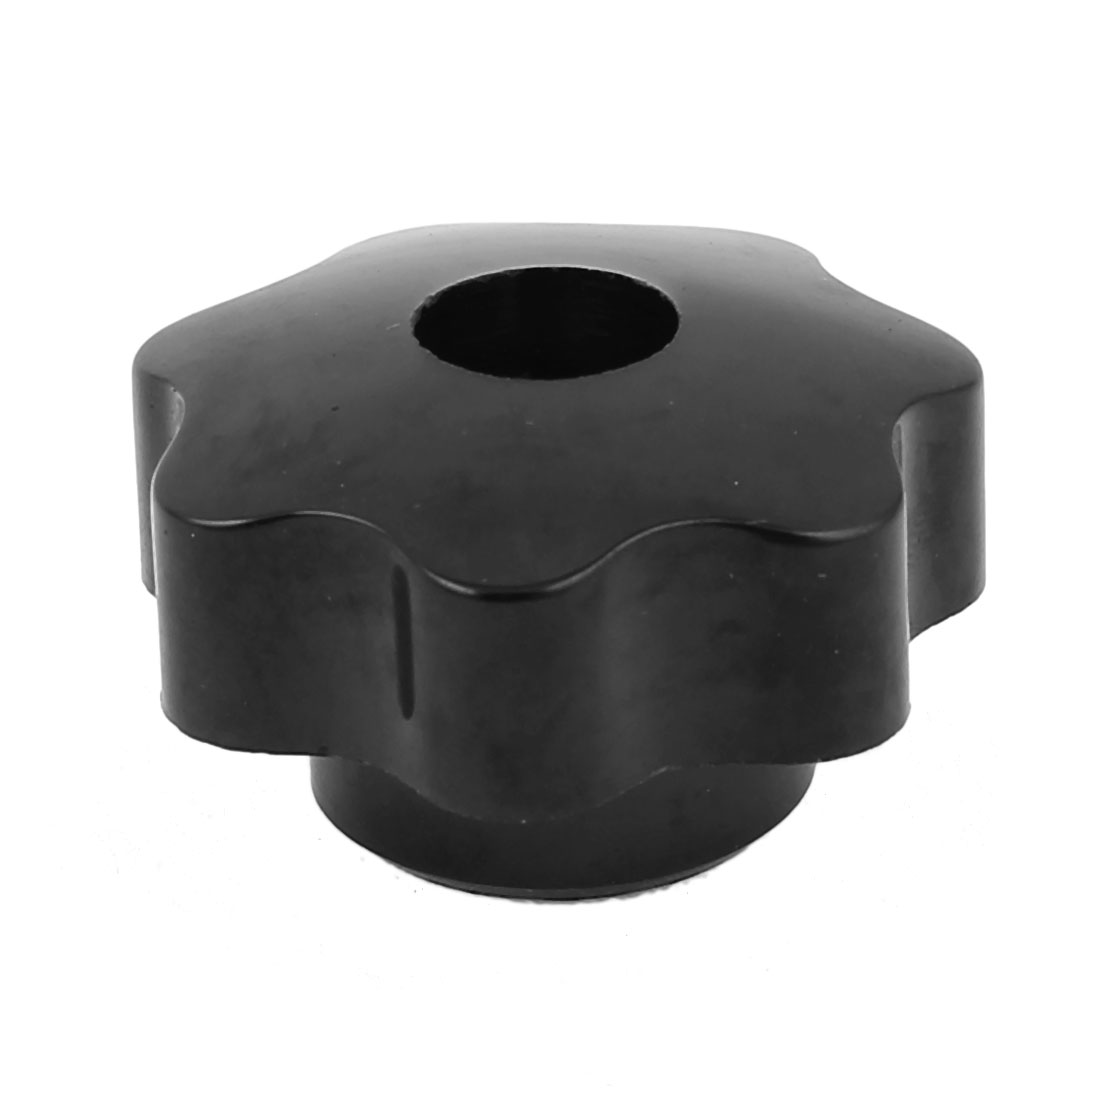 6mm Diameter Thread Hole Female Star Head Clamping Knob Replacement Black